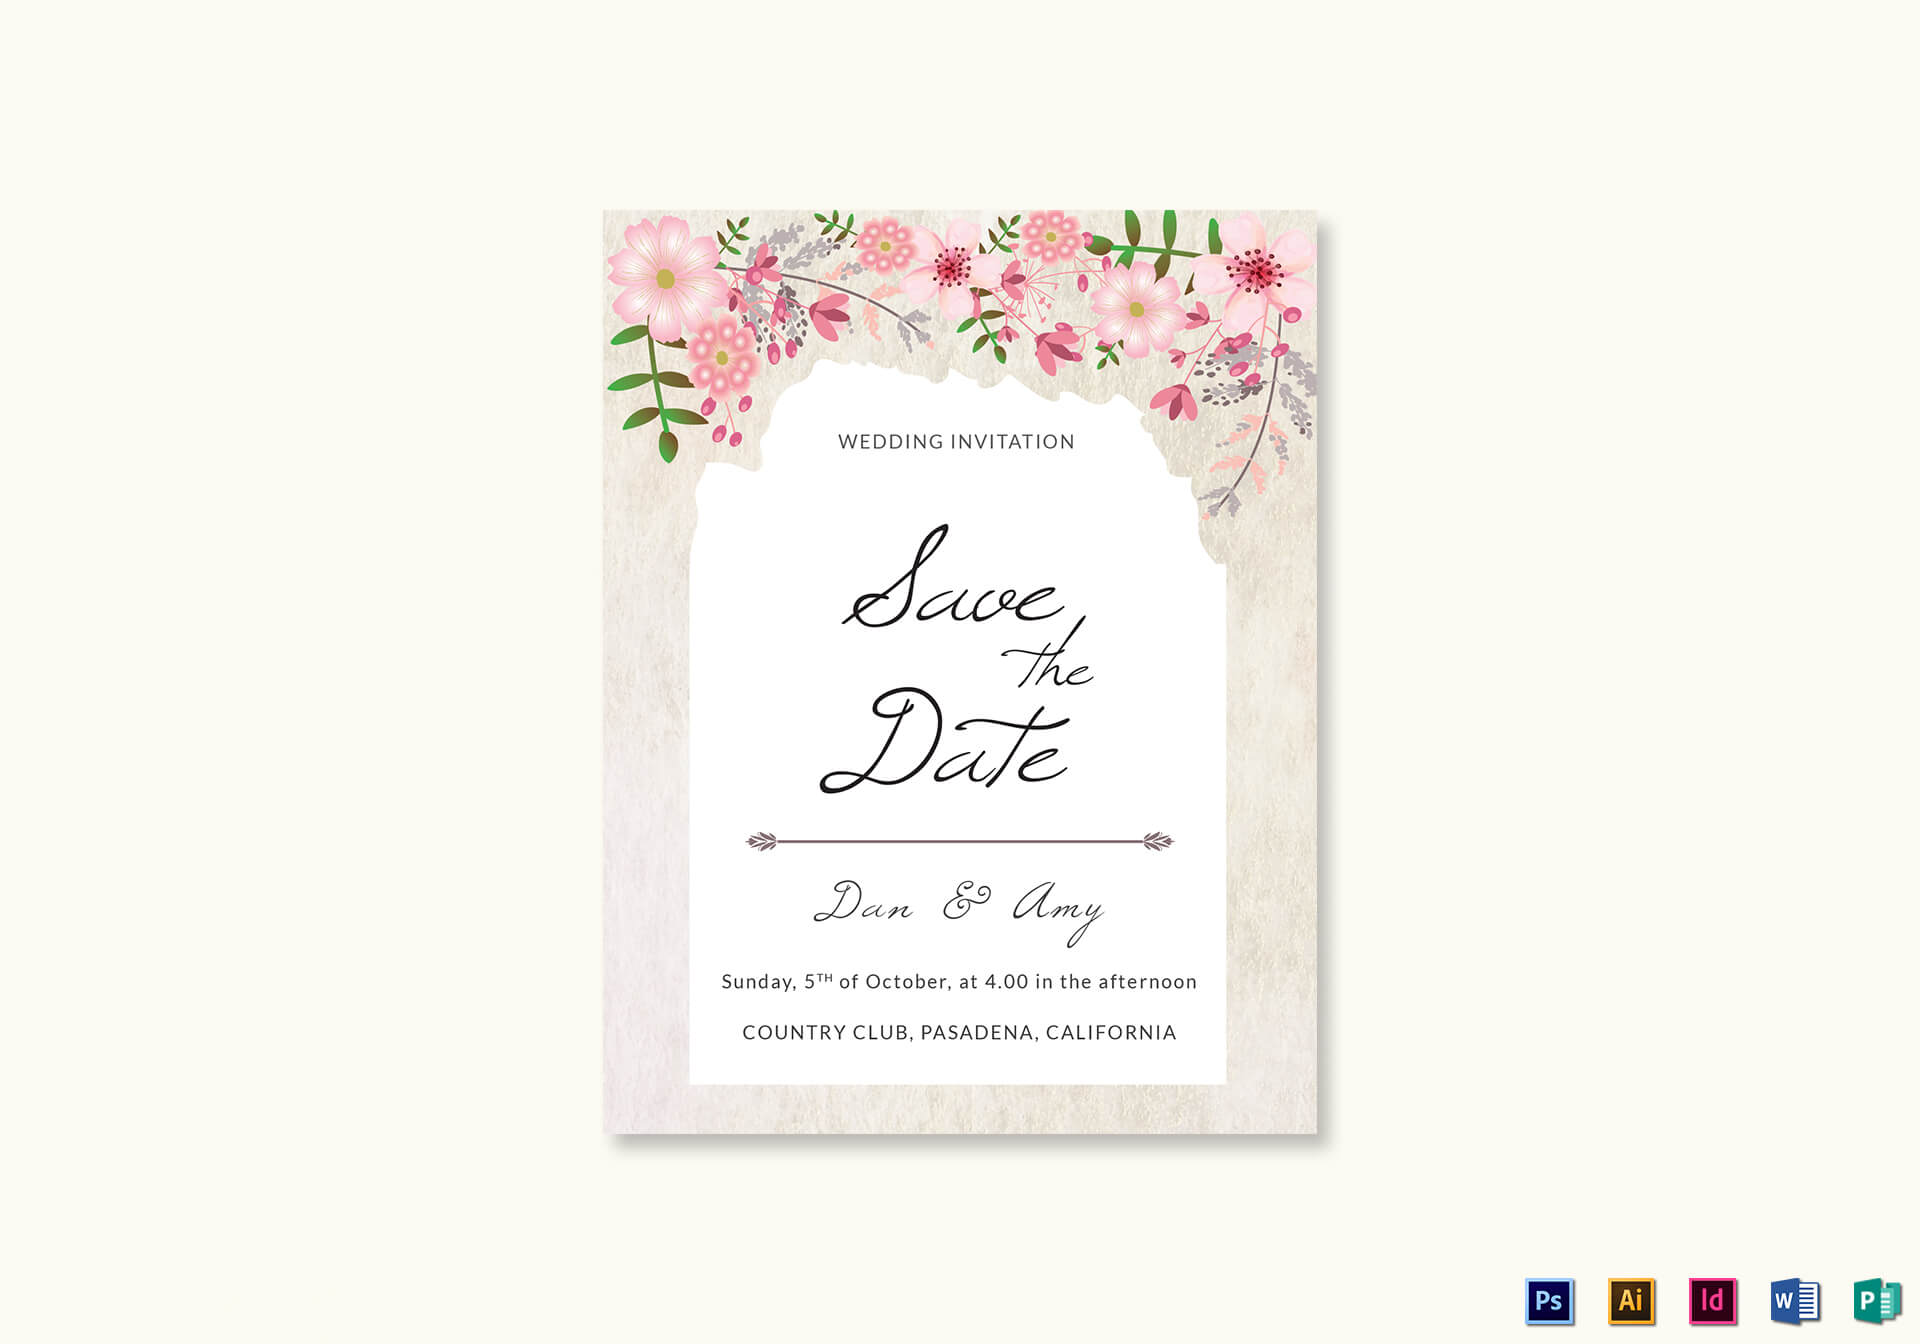 Pink Floral Save The Date Card Template Inside Save The Date Template Word